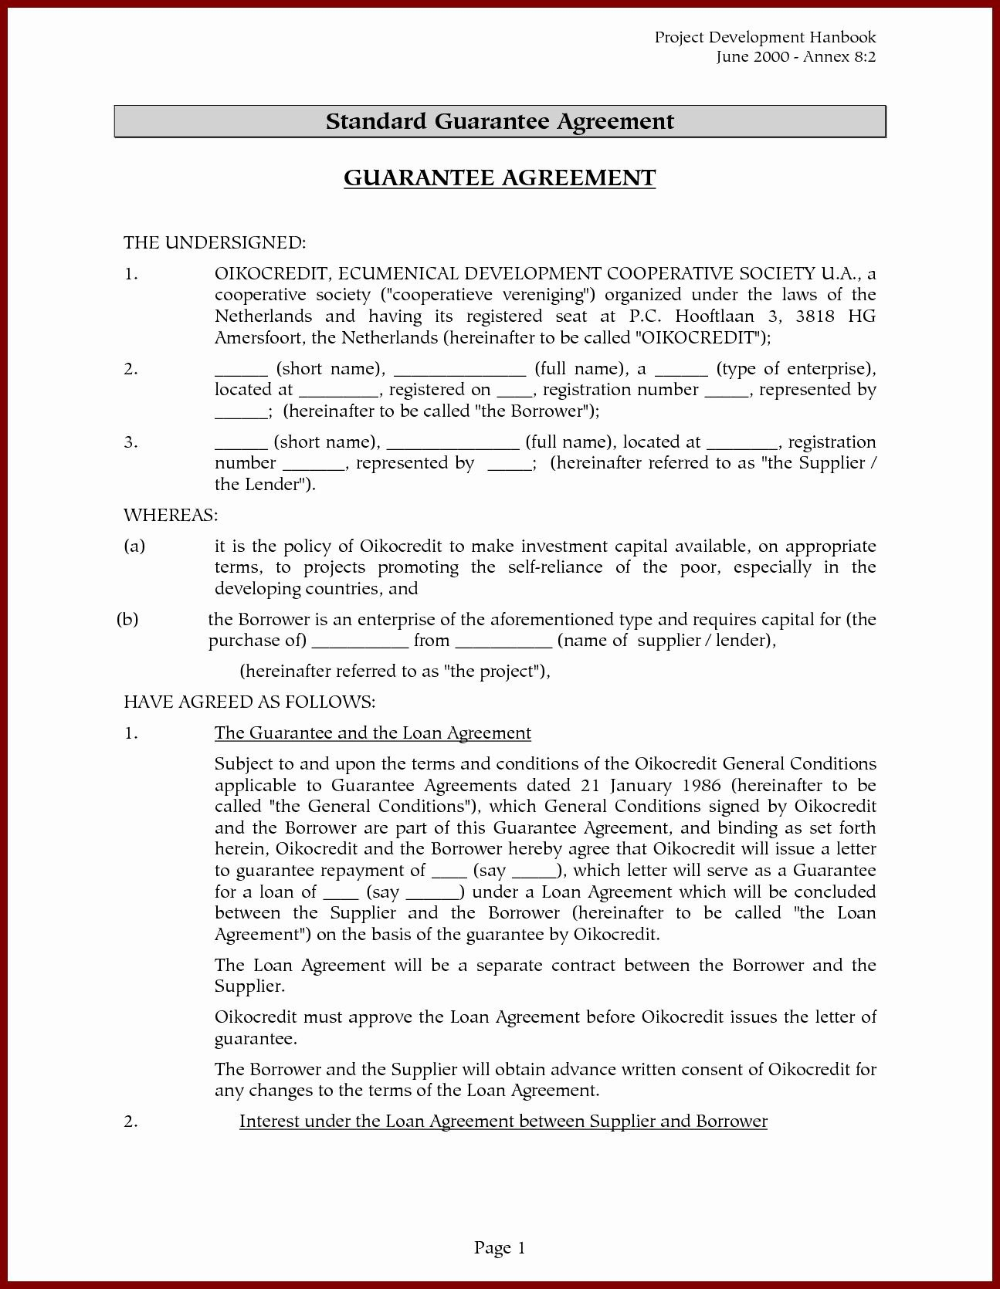 Commercial Lease Term Sheet Template Glendale Community Inside Instruction Sheet Template Word 10 Professional Te Contract Template Essay Writing Help Words